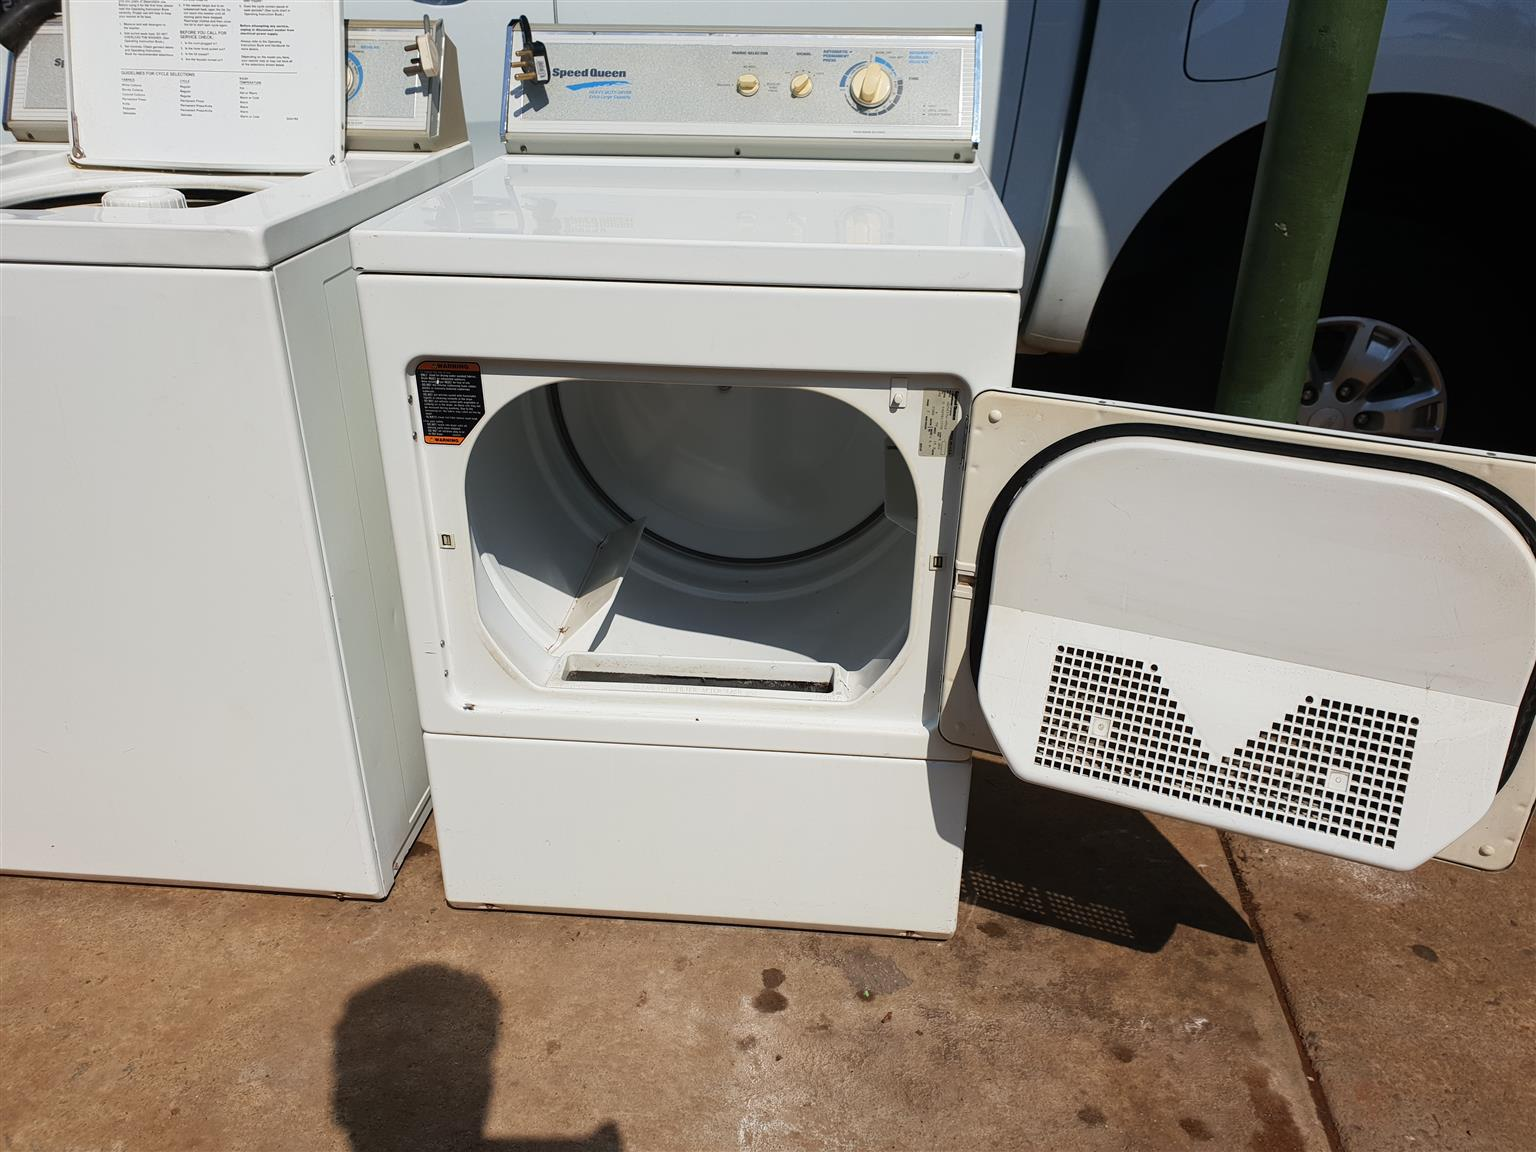 Speed Queen combo washing machine and tumble dryer for sale R 5500 pleas call me on 0726985652